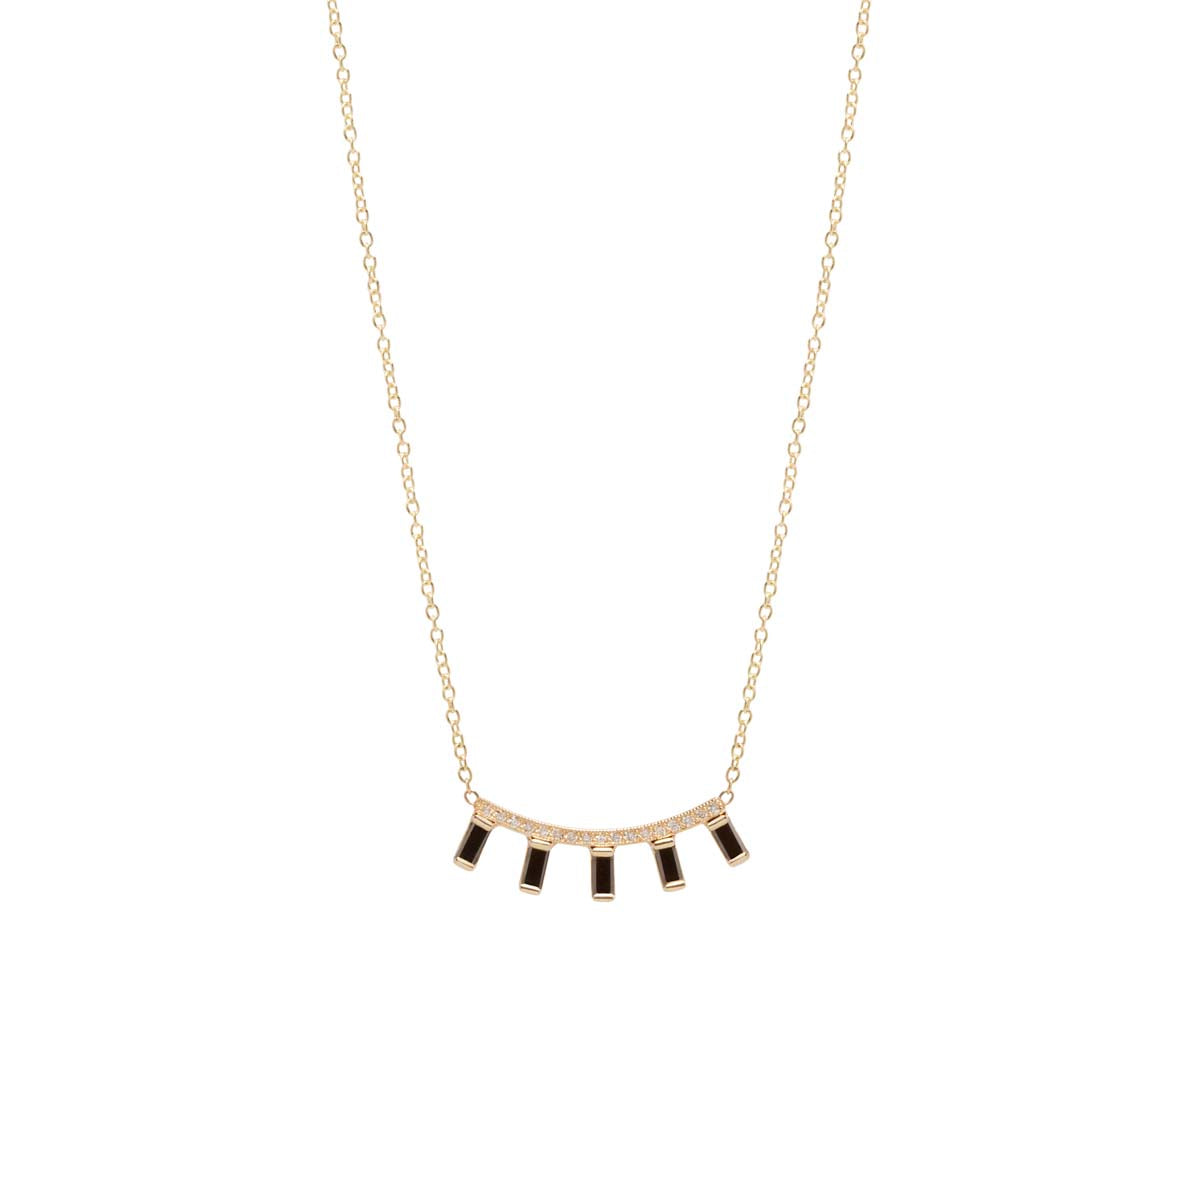 14k curved pave bar and 5 black baguette diamond necklace